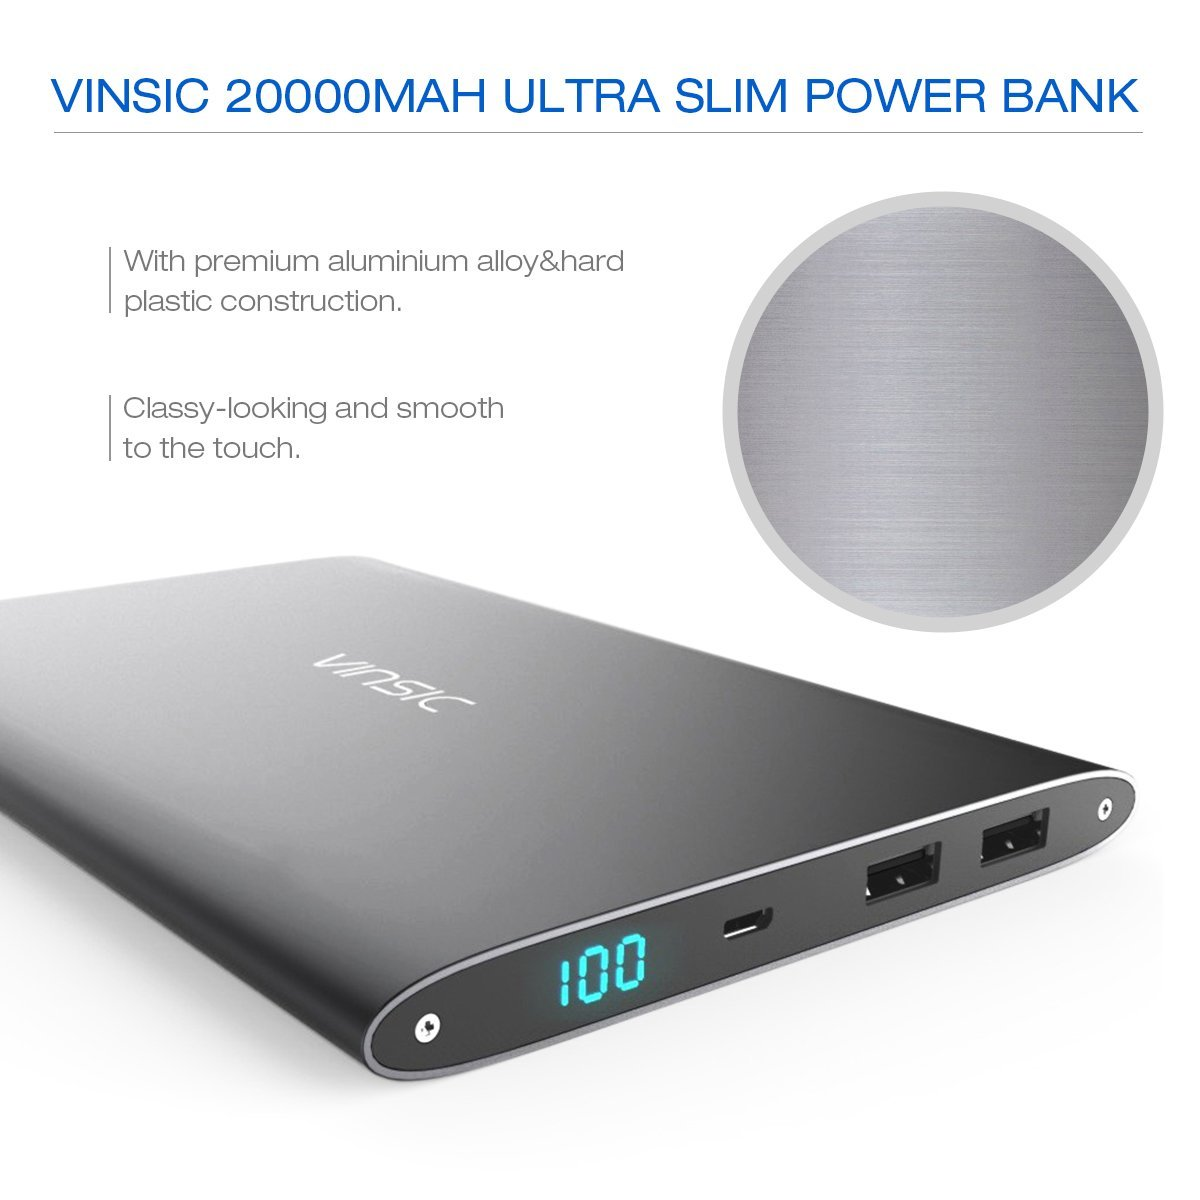 Power Bank, Vinsic 20000mAh Ultra-slim Power Bank, 10 Times for iPhone 5S, Dual USB Port 2.1a 1a External Mobile Battery Charger Pack for iPhone,iPad,Samsung Galaxy,Cell Phones,Tablets.